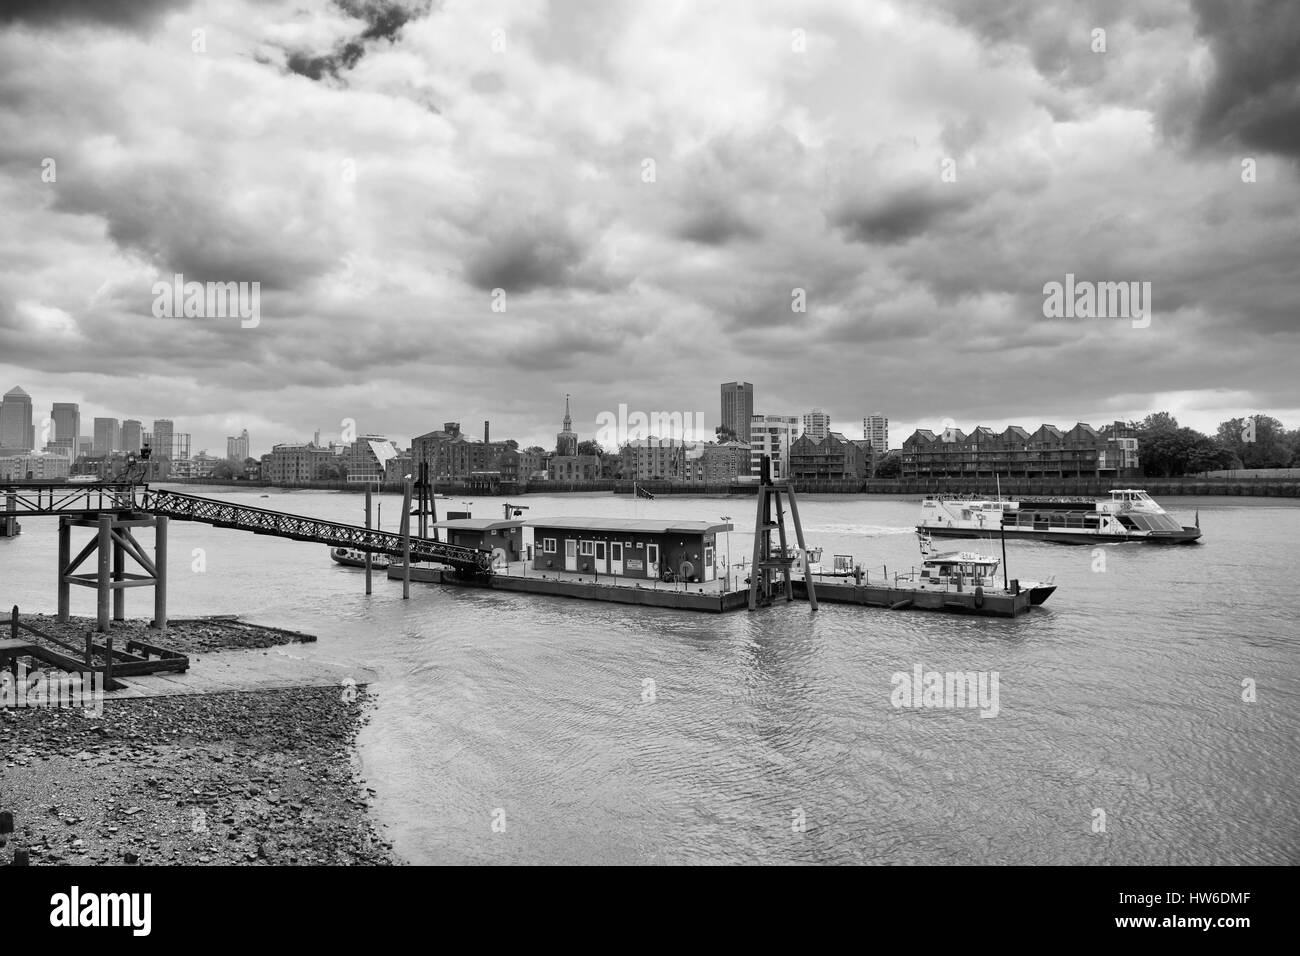 Metropolitan Police Marine Policing Unit, River Thames, London, England - Stock Image